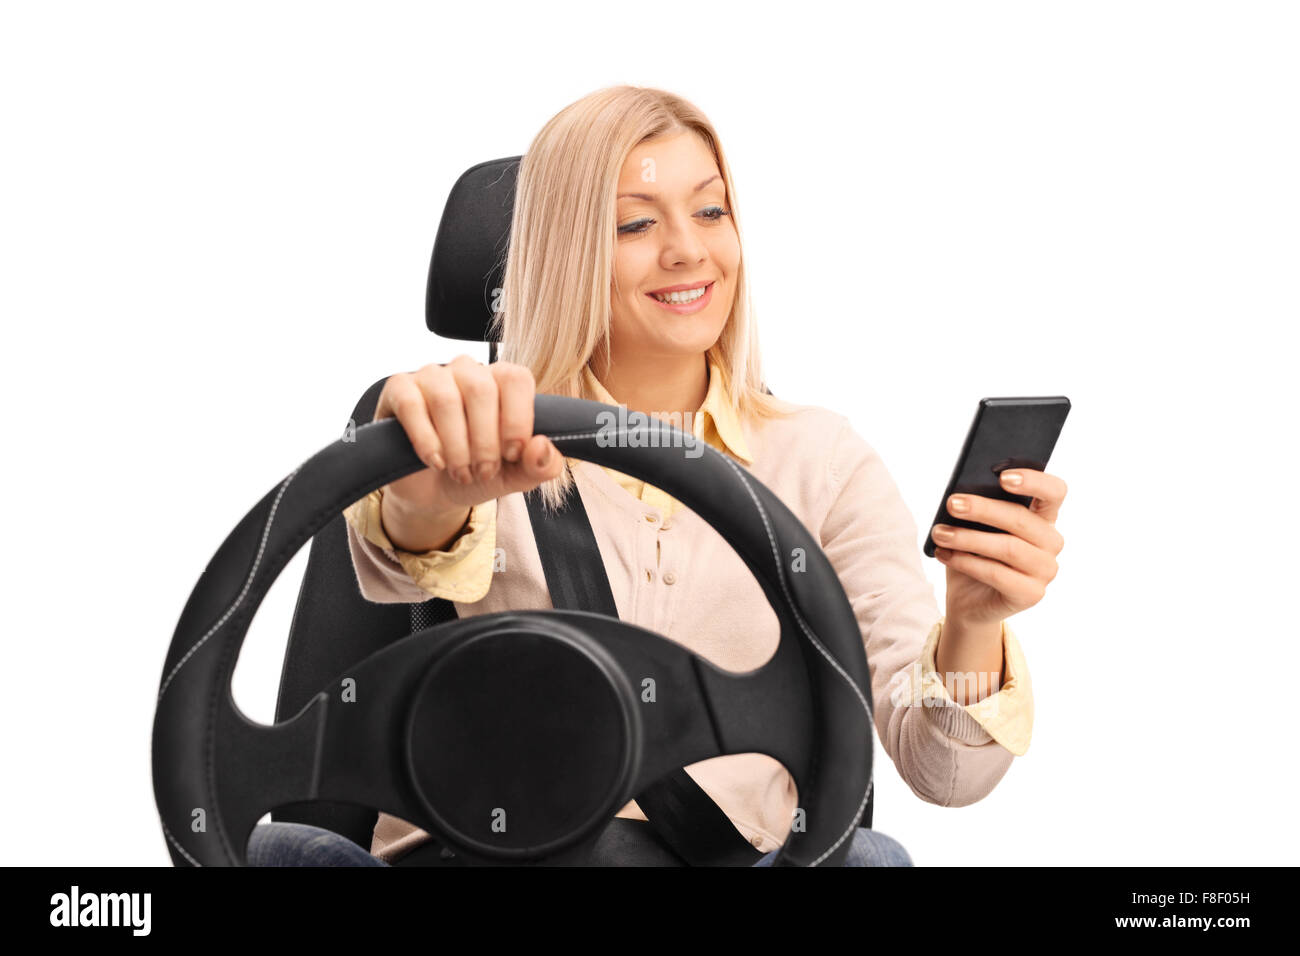 Studio shot of an irresponsible blond woman texting and driving isolated on white background - Stock Image